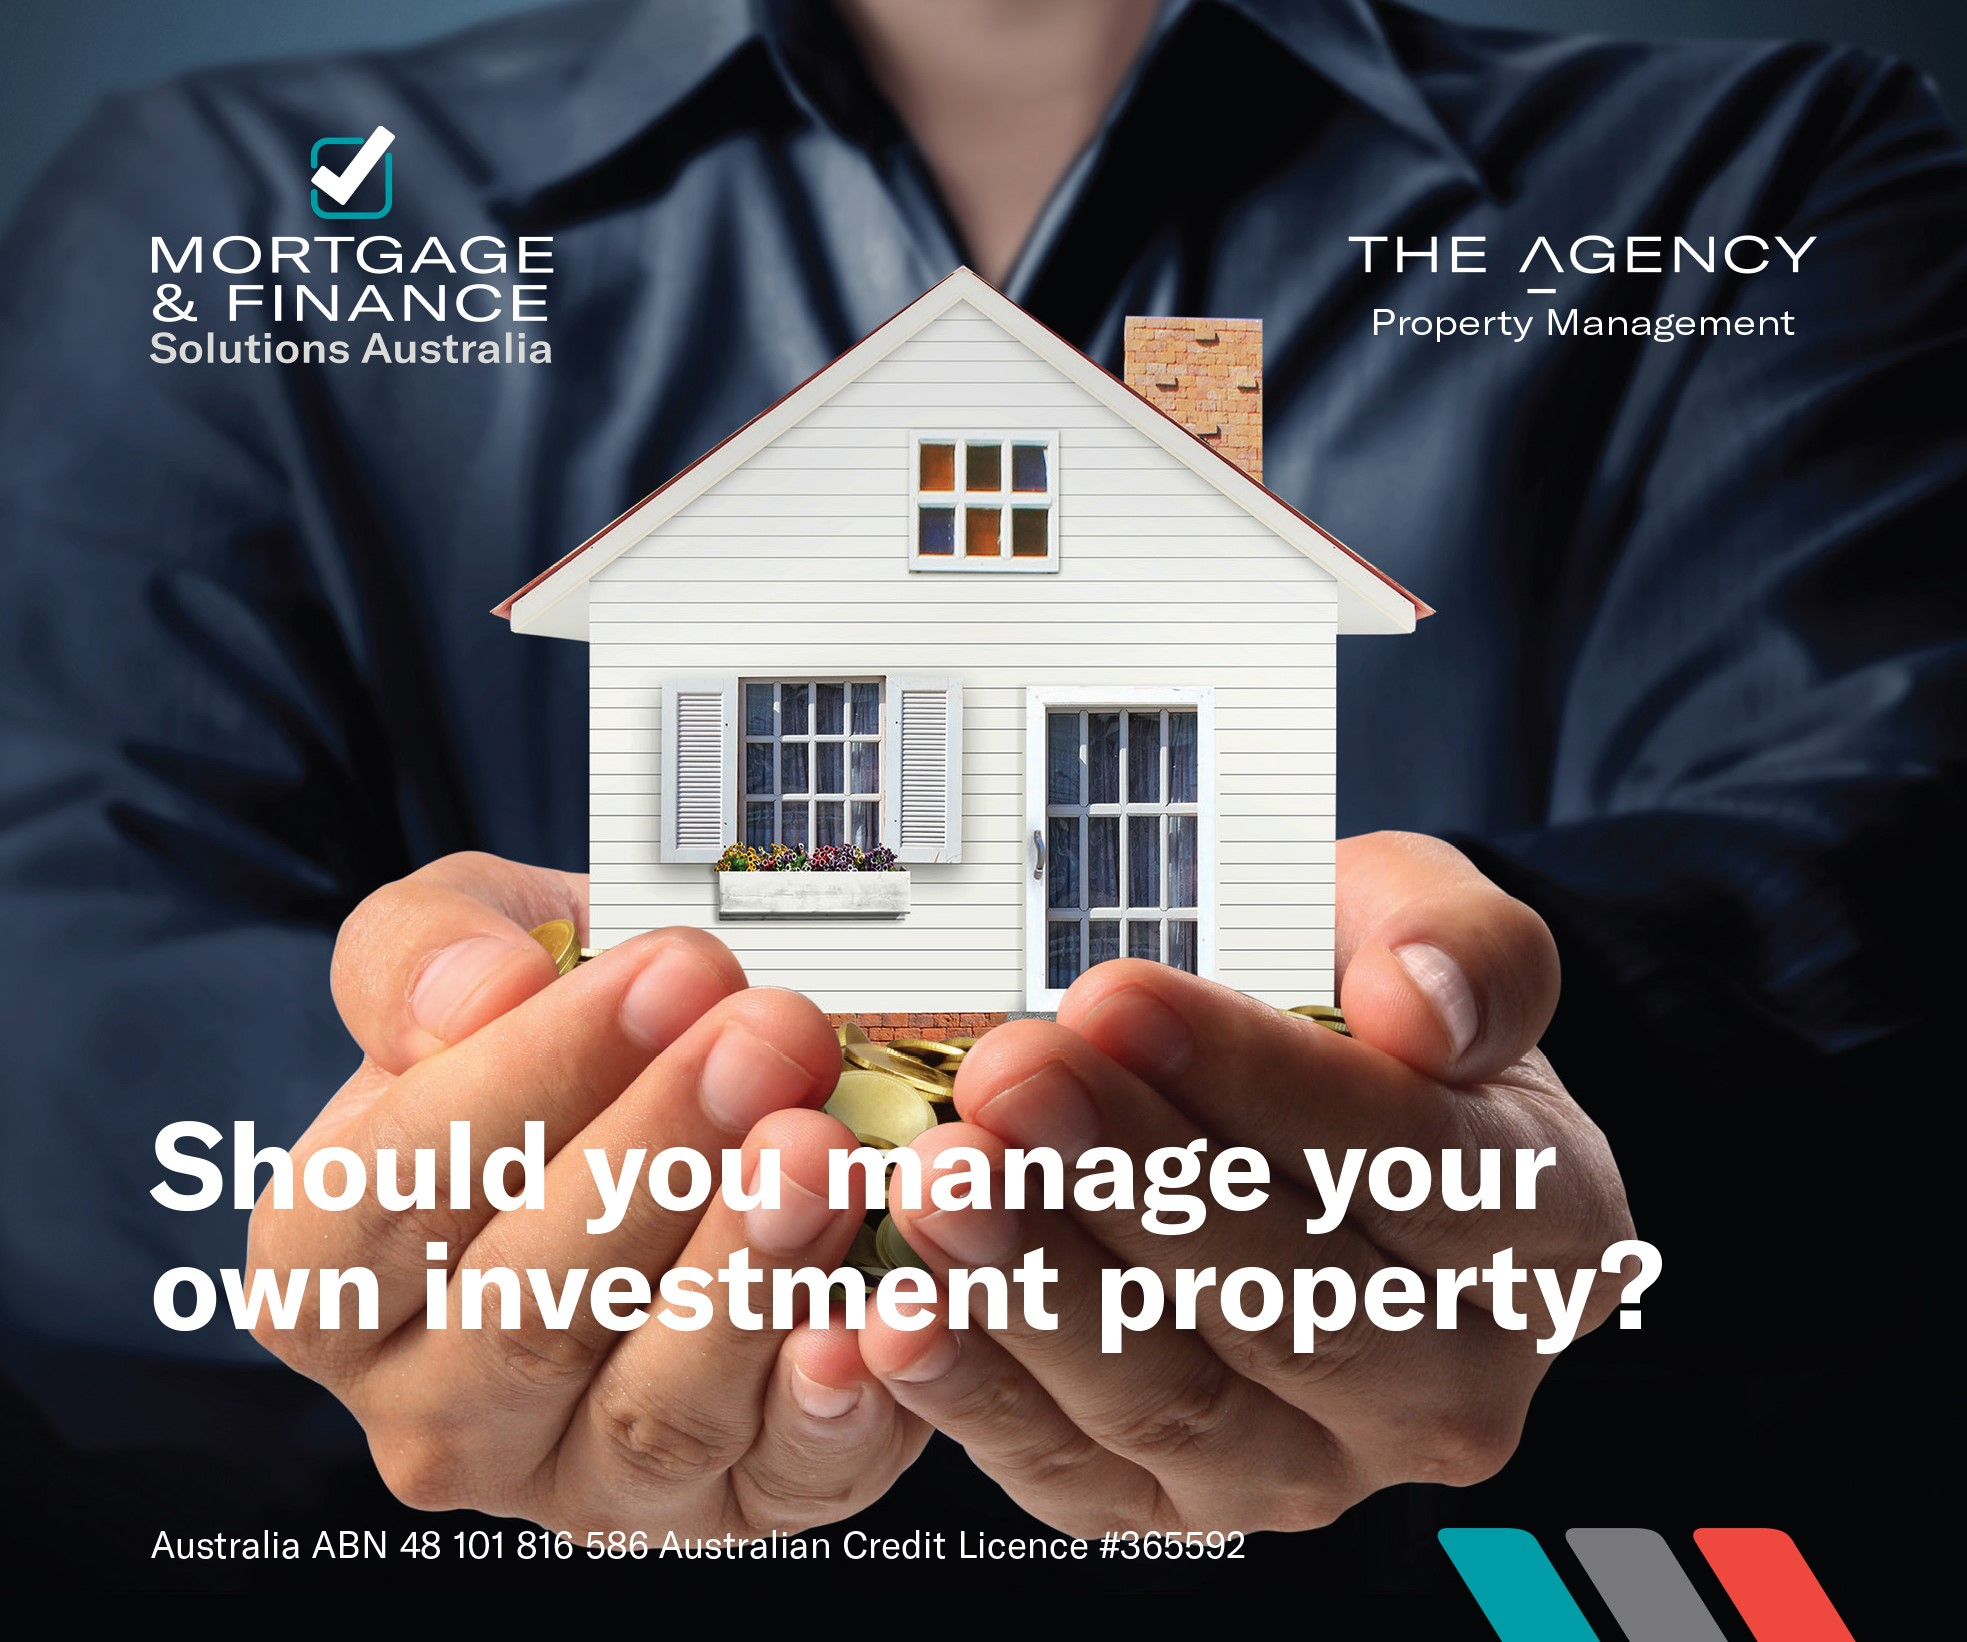 Should you manage your own investment property?